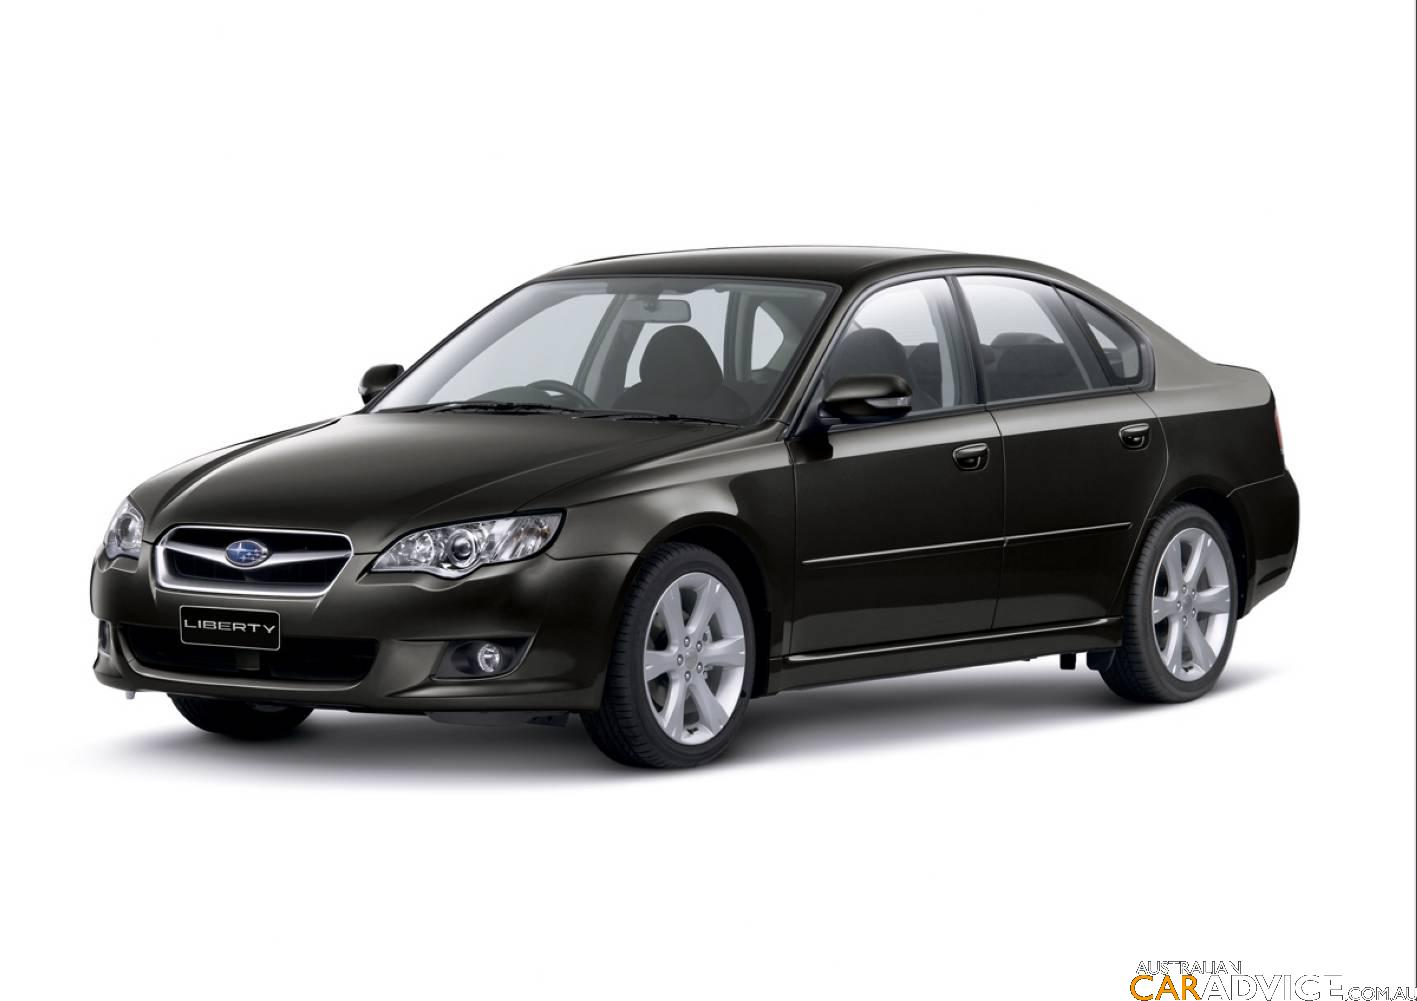 2008 subaru liberty and outback photos caradvice. Black Bedroom Furniture Sets. Home Design Ideas